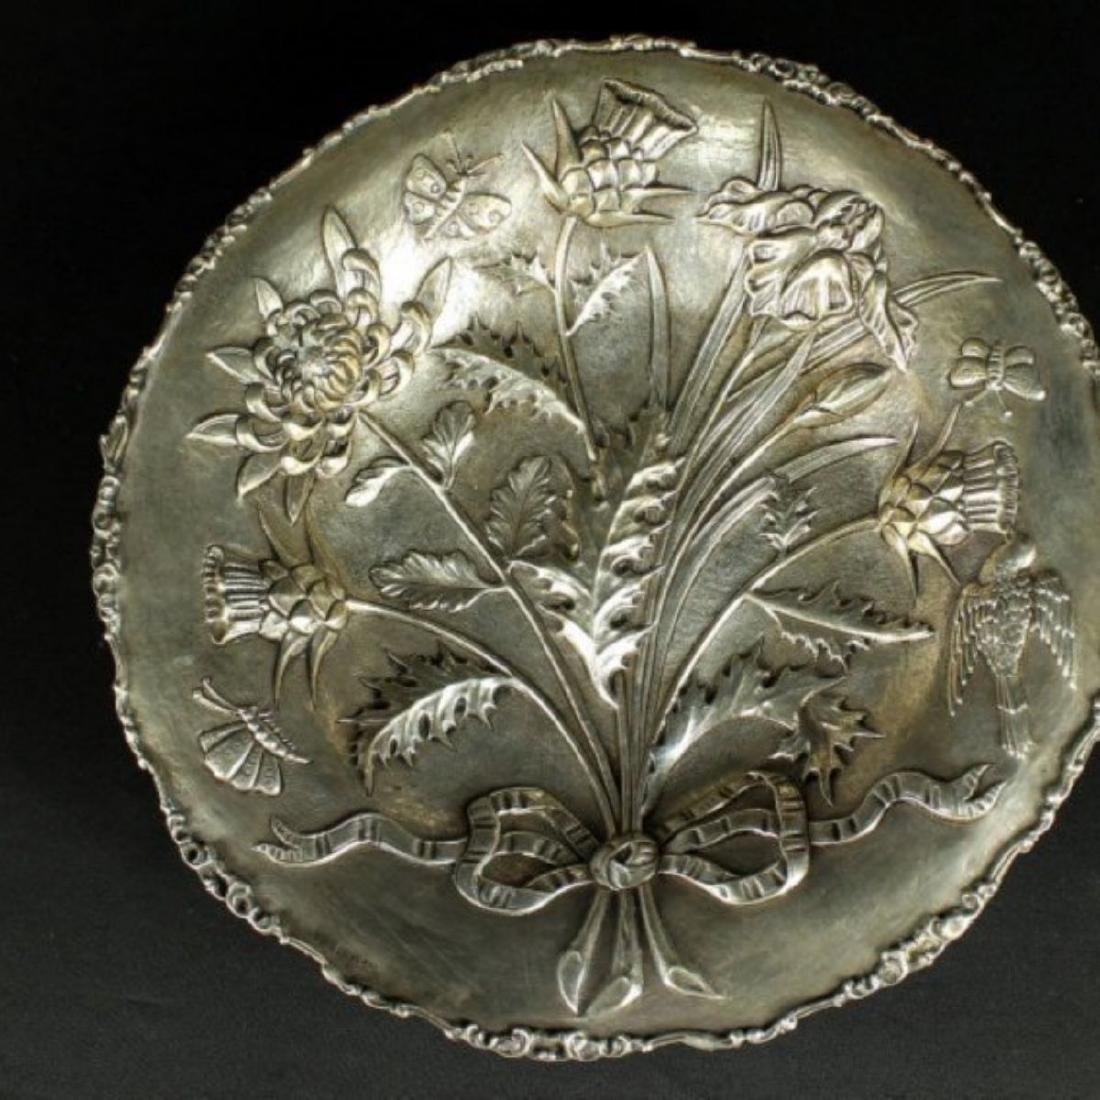 STERLING SILVER TRAY WITH INLAID DESIGNS